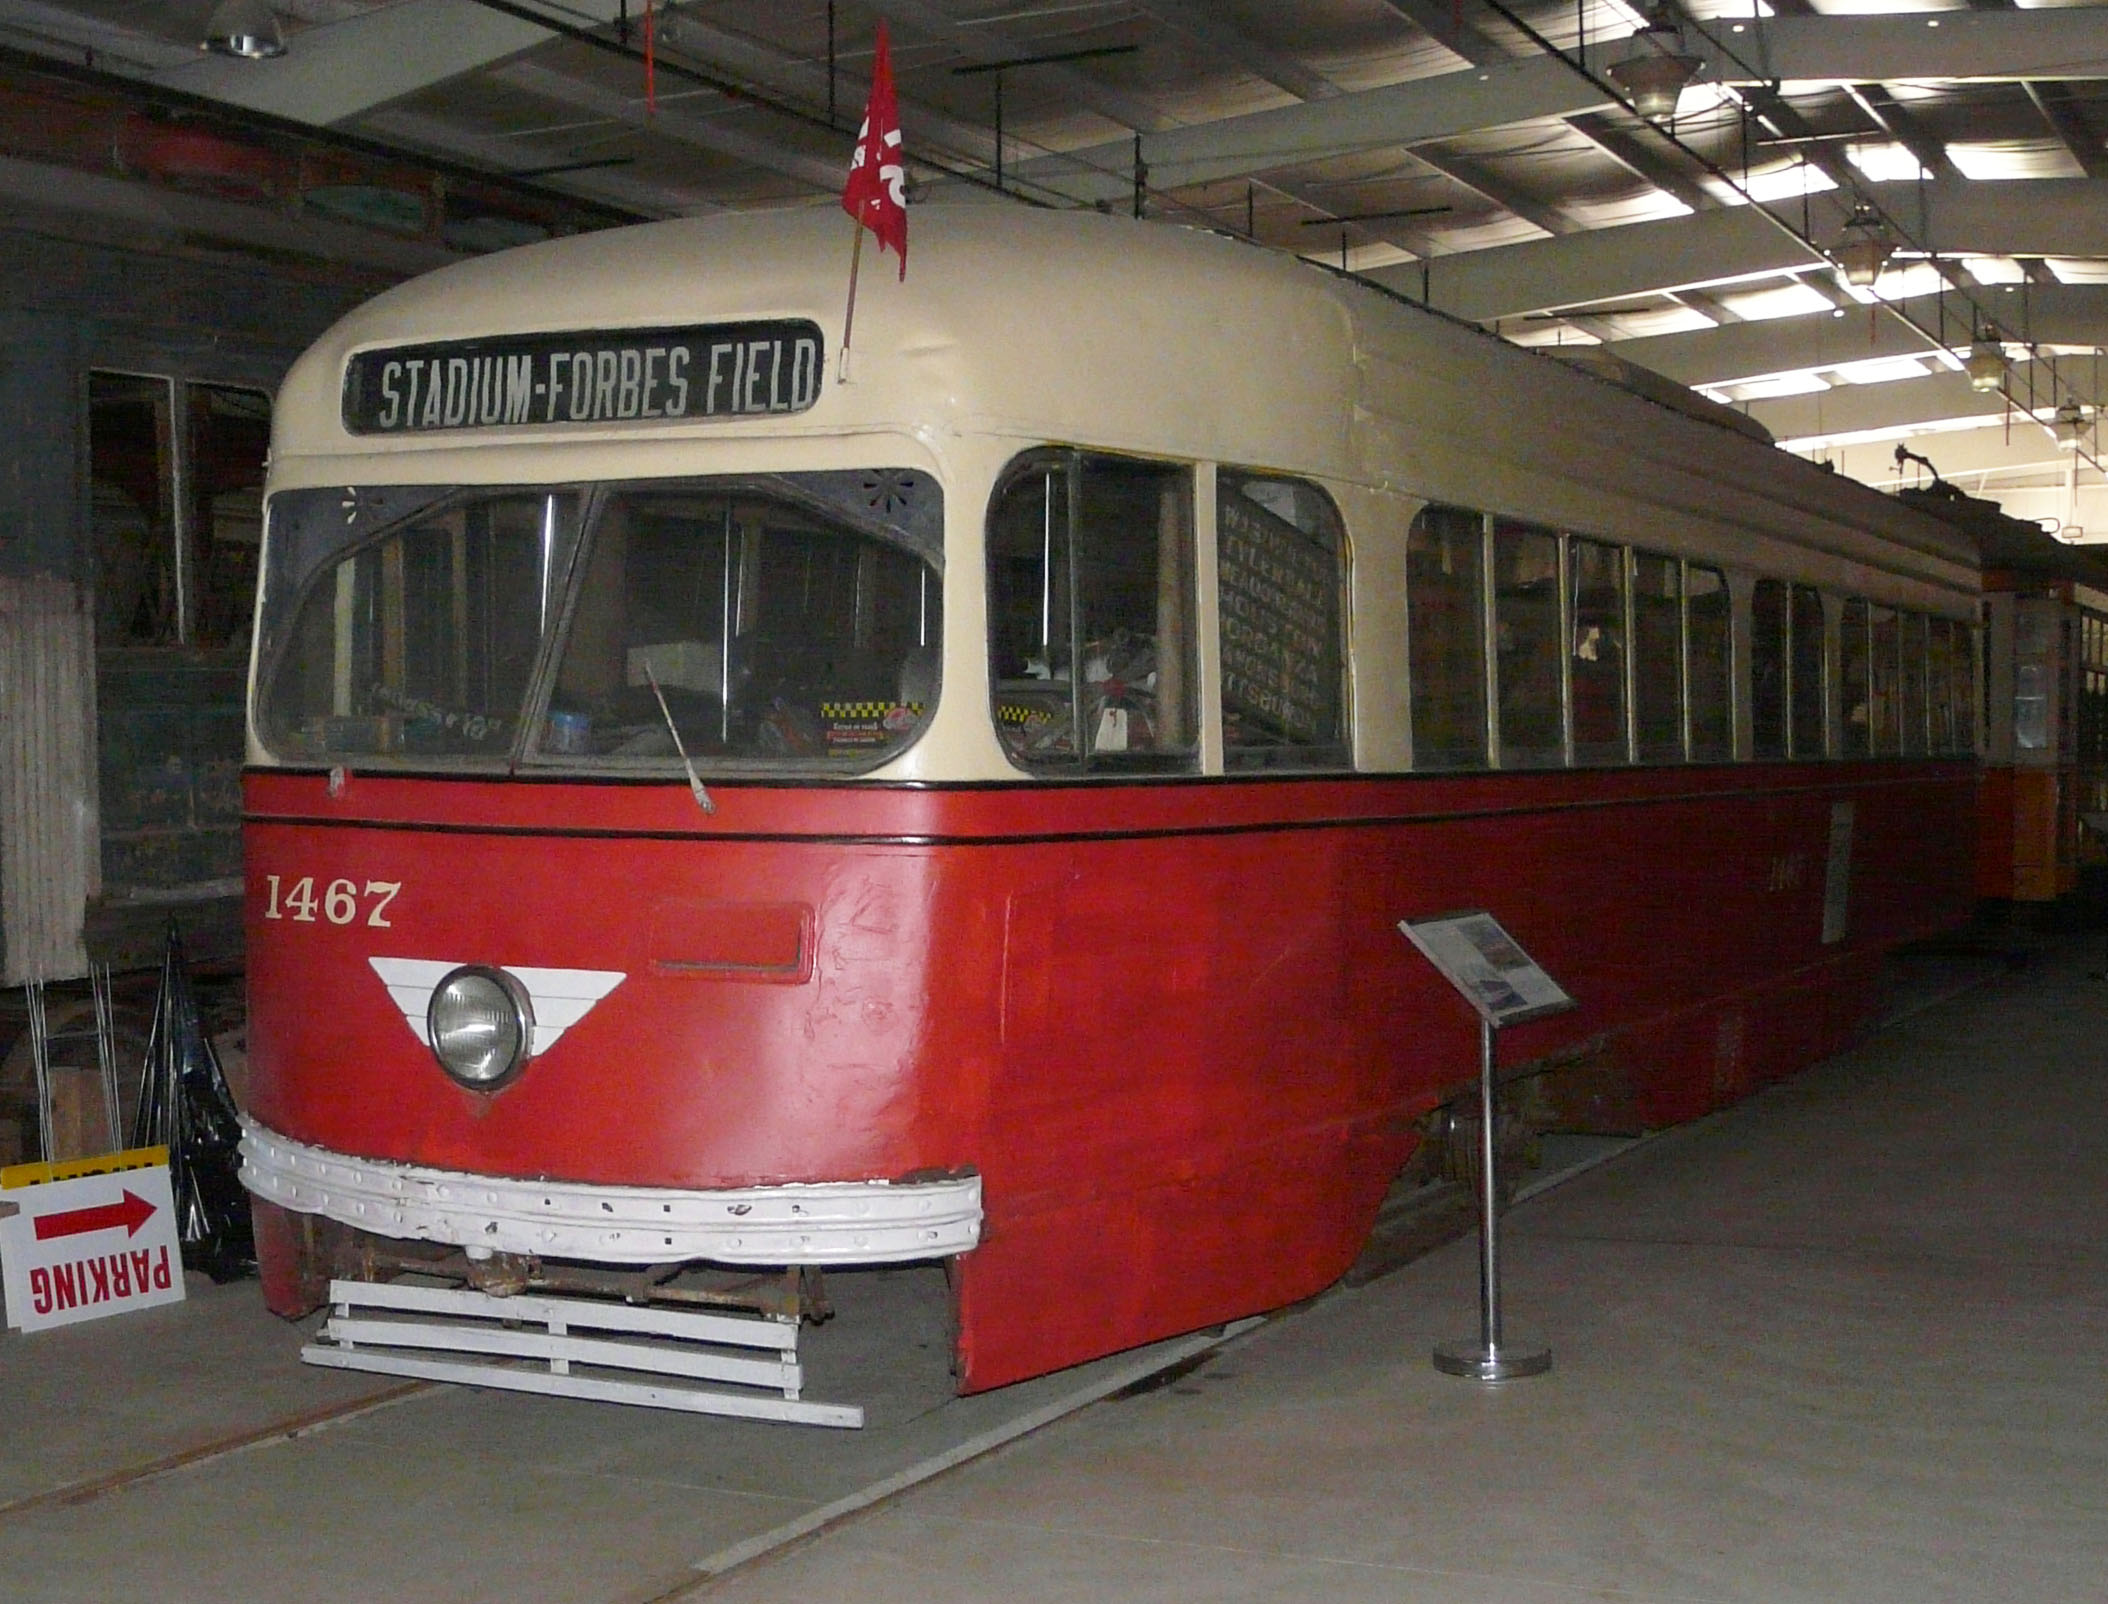 1467 as presently on display at the Trolley Display Building.